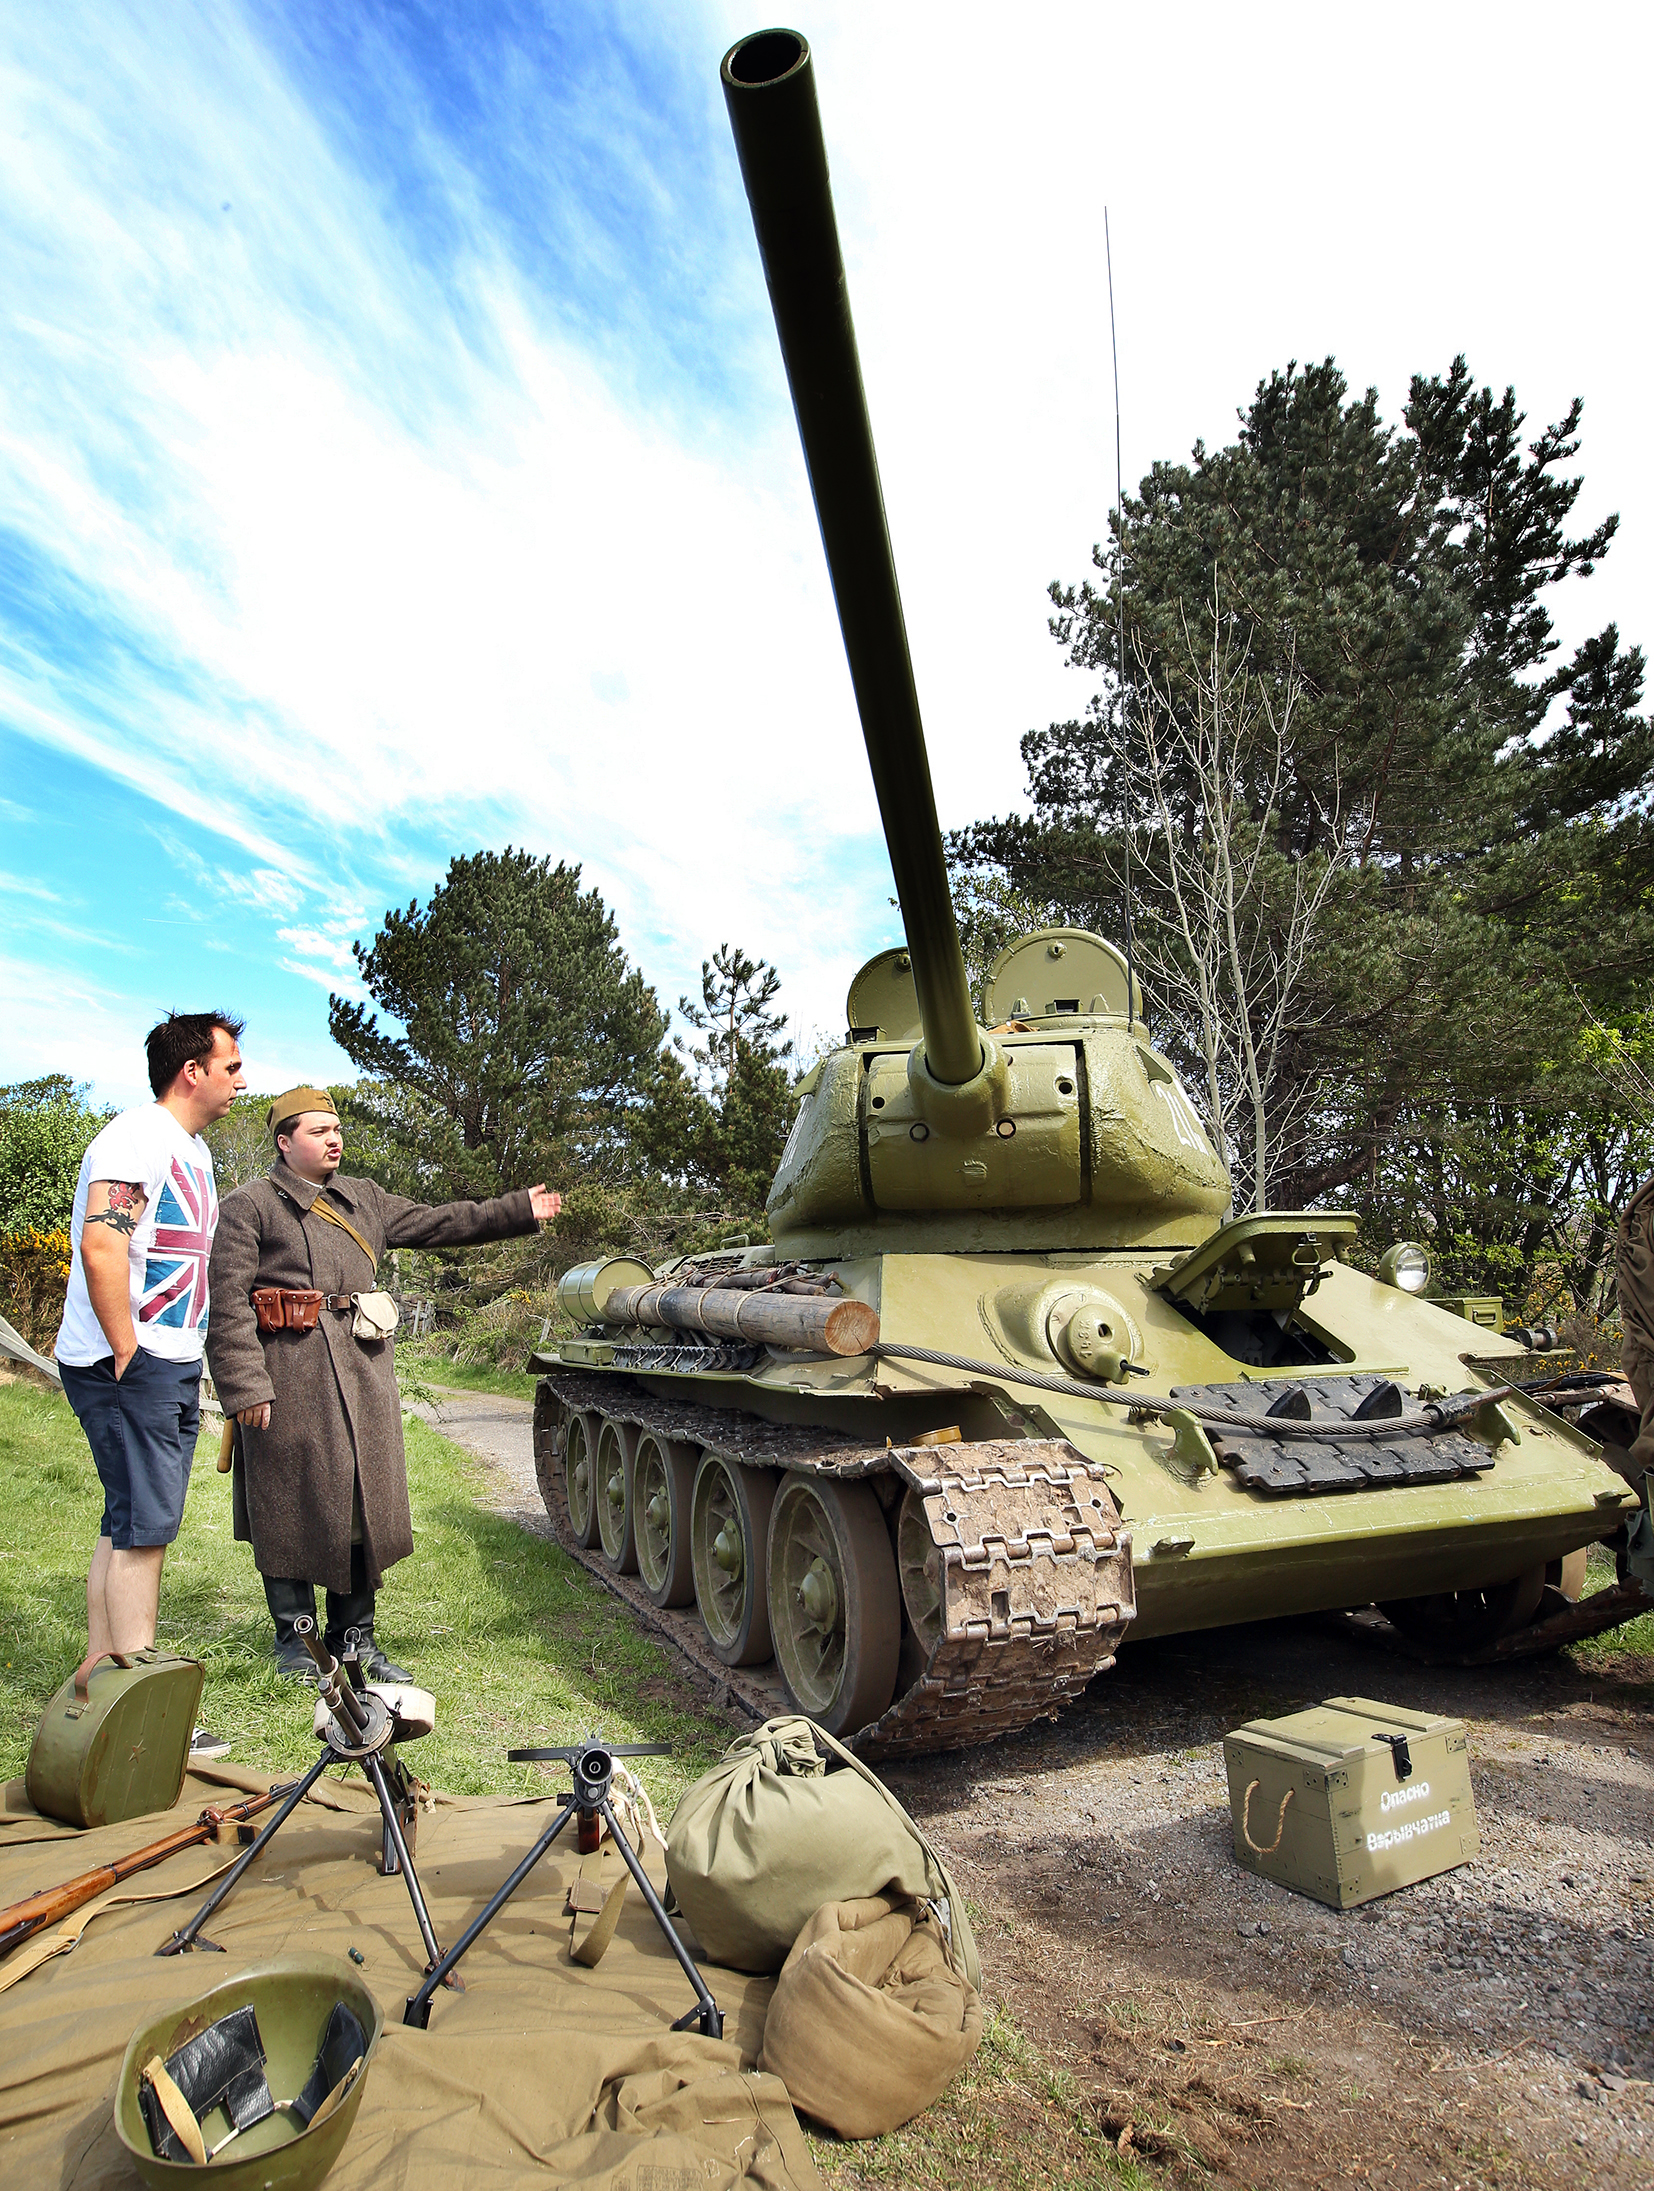 A T-34 Russian tank was one of the popular attractions at Poolewe.